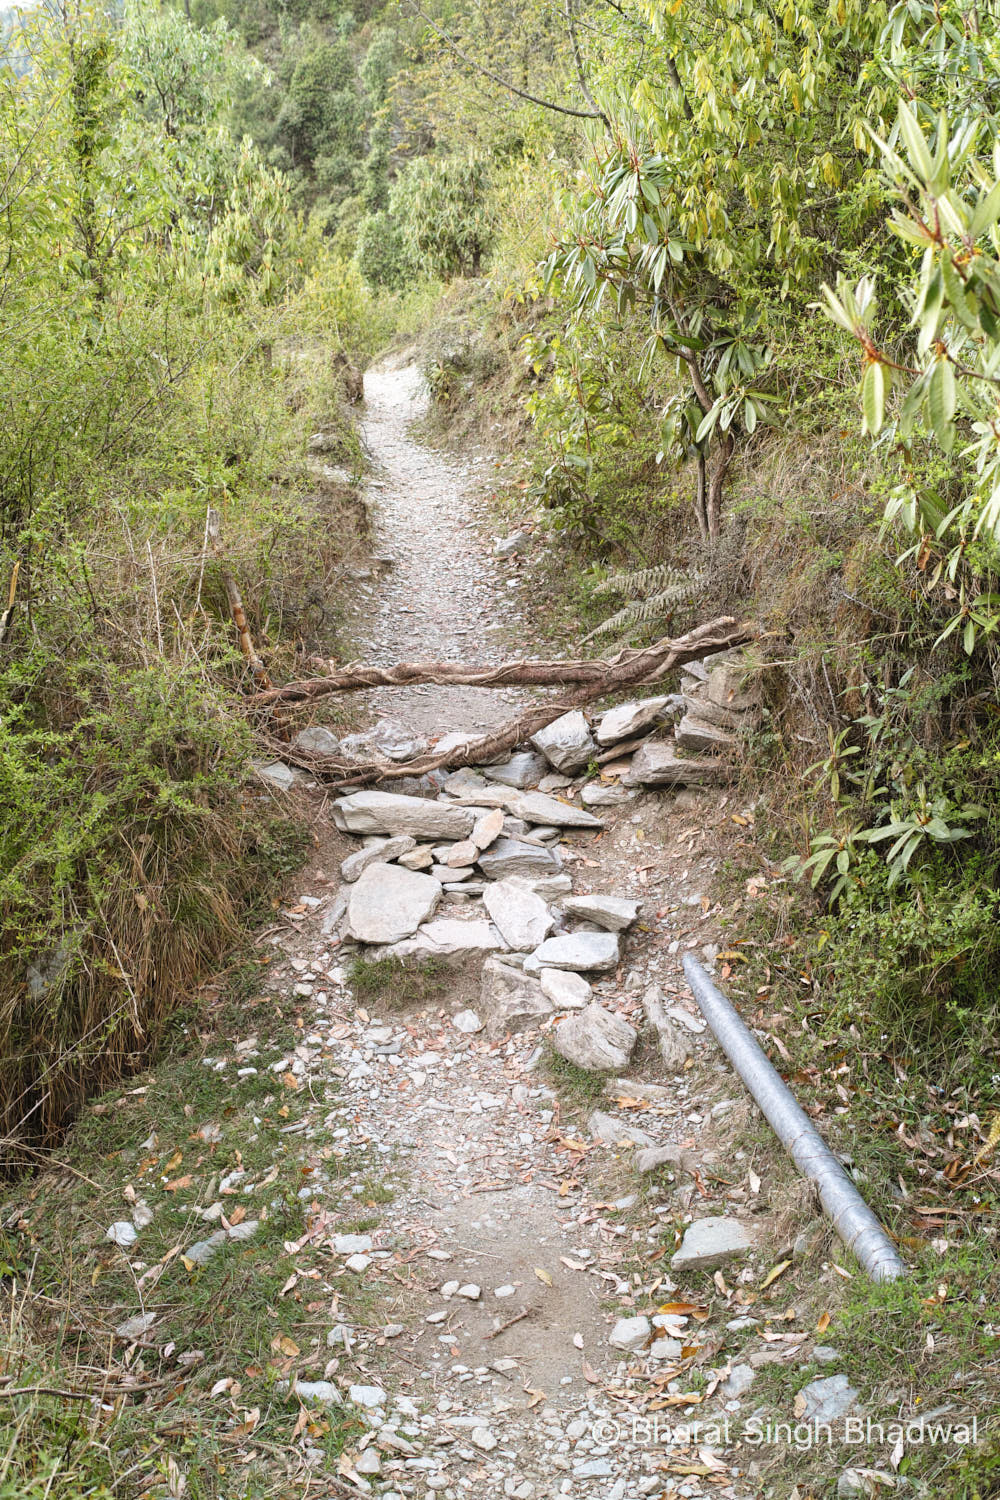 Wooden fork and the water pipeline to the right